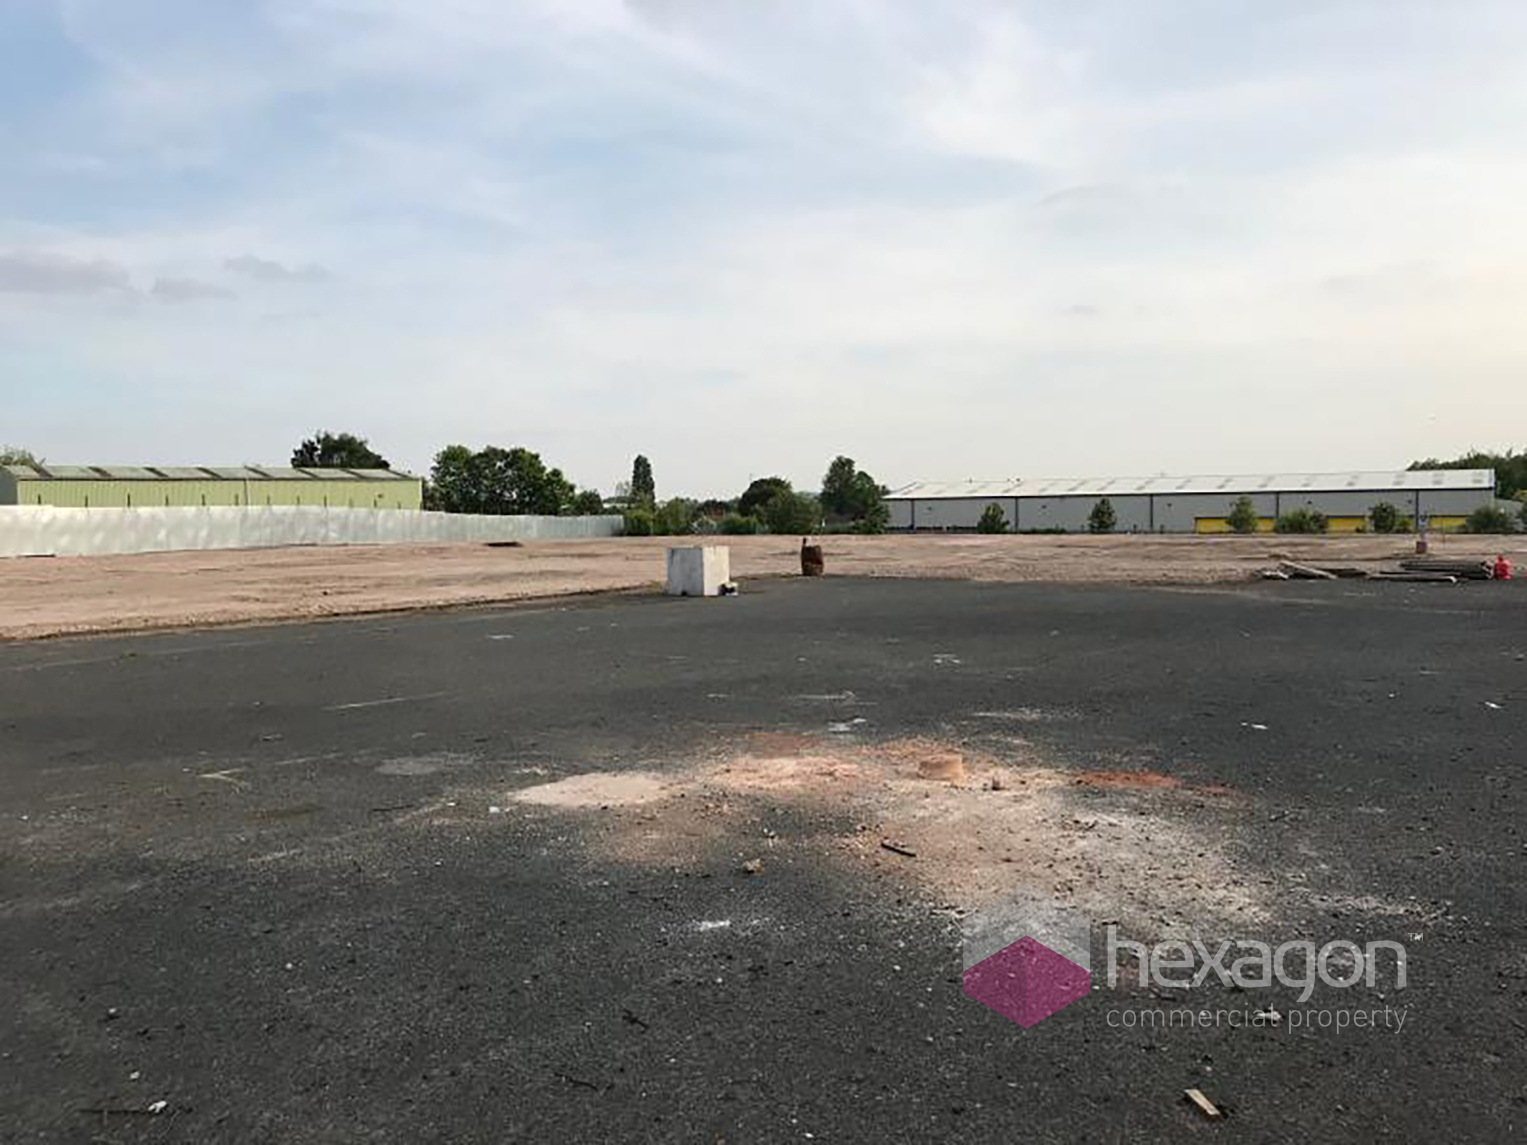 0 bed Land (Commercial) for rent in Willenhall. From Hexagon Commercial Property